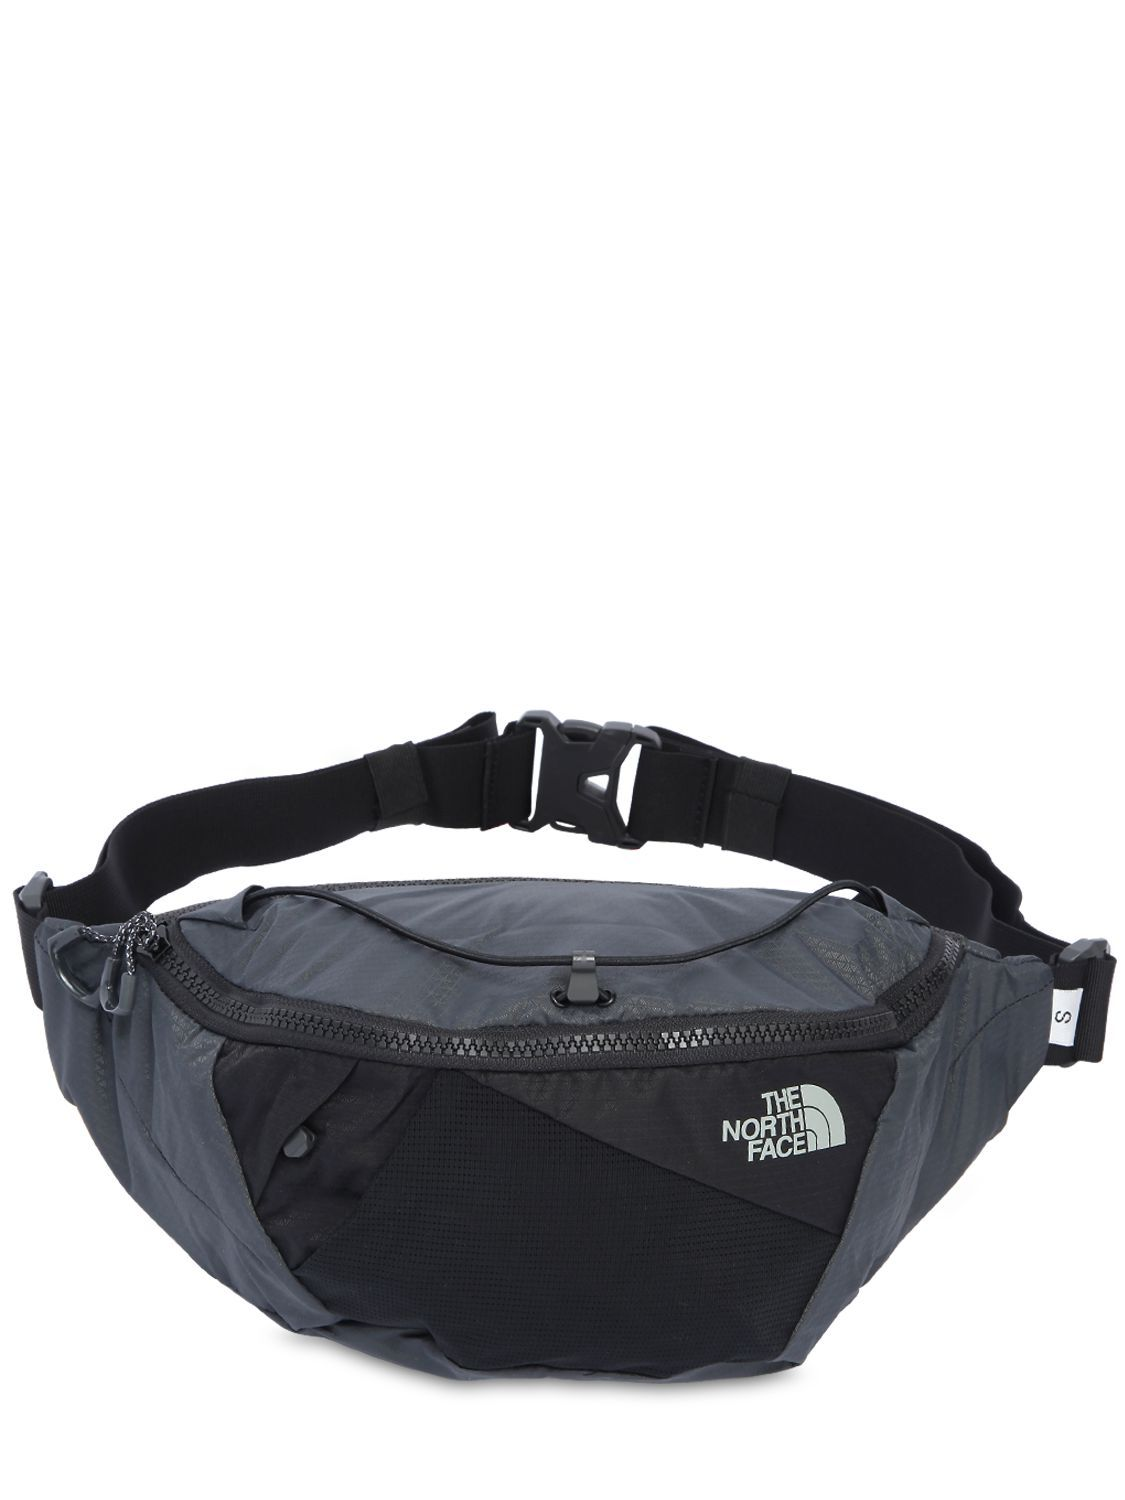 260cc96b3 THE NORTH FACE . #thenorthface #bags #belt bags # | The North Face ...